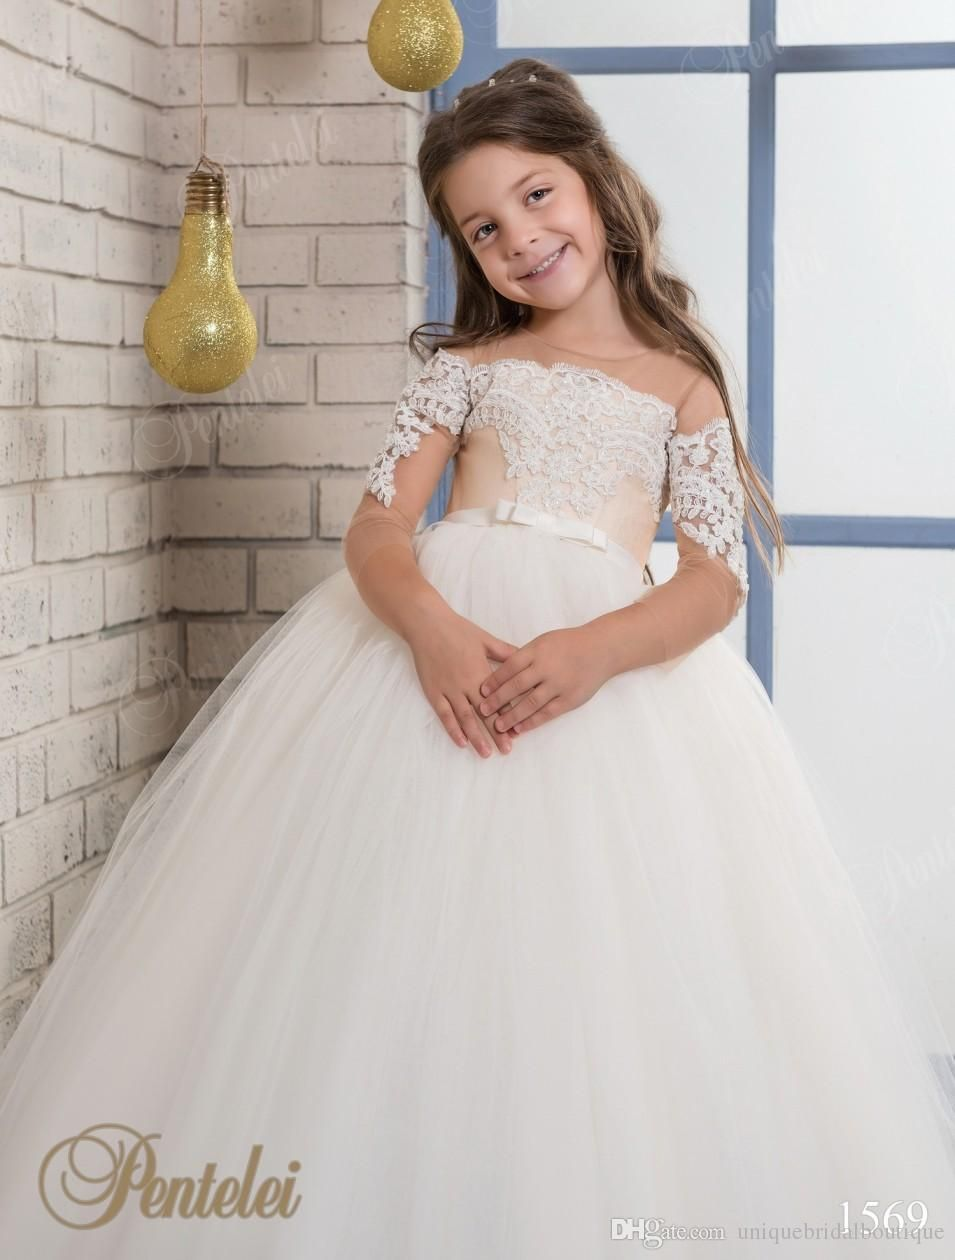 Kids wedding dresses illusion long sleeves 2017 two tones kids wedding dresses illusion long sleeves 2017 two tones appliques tulle princess flower little girls gowns junglespirit Gallery